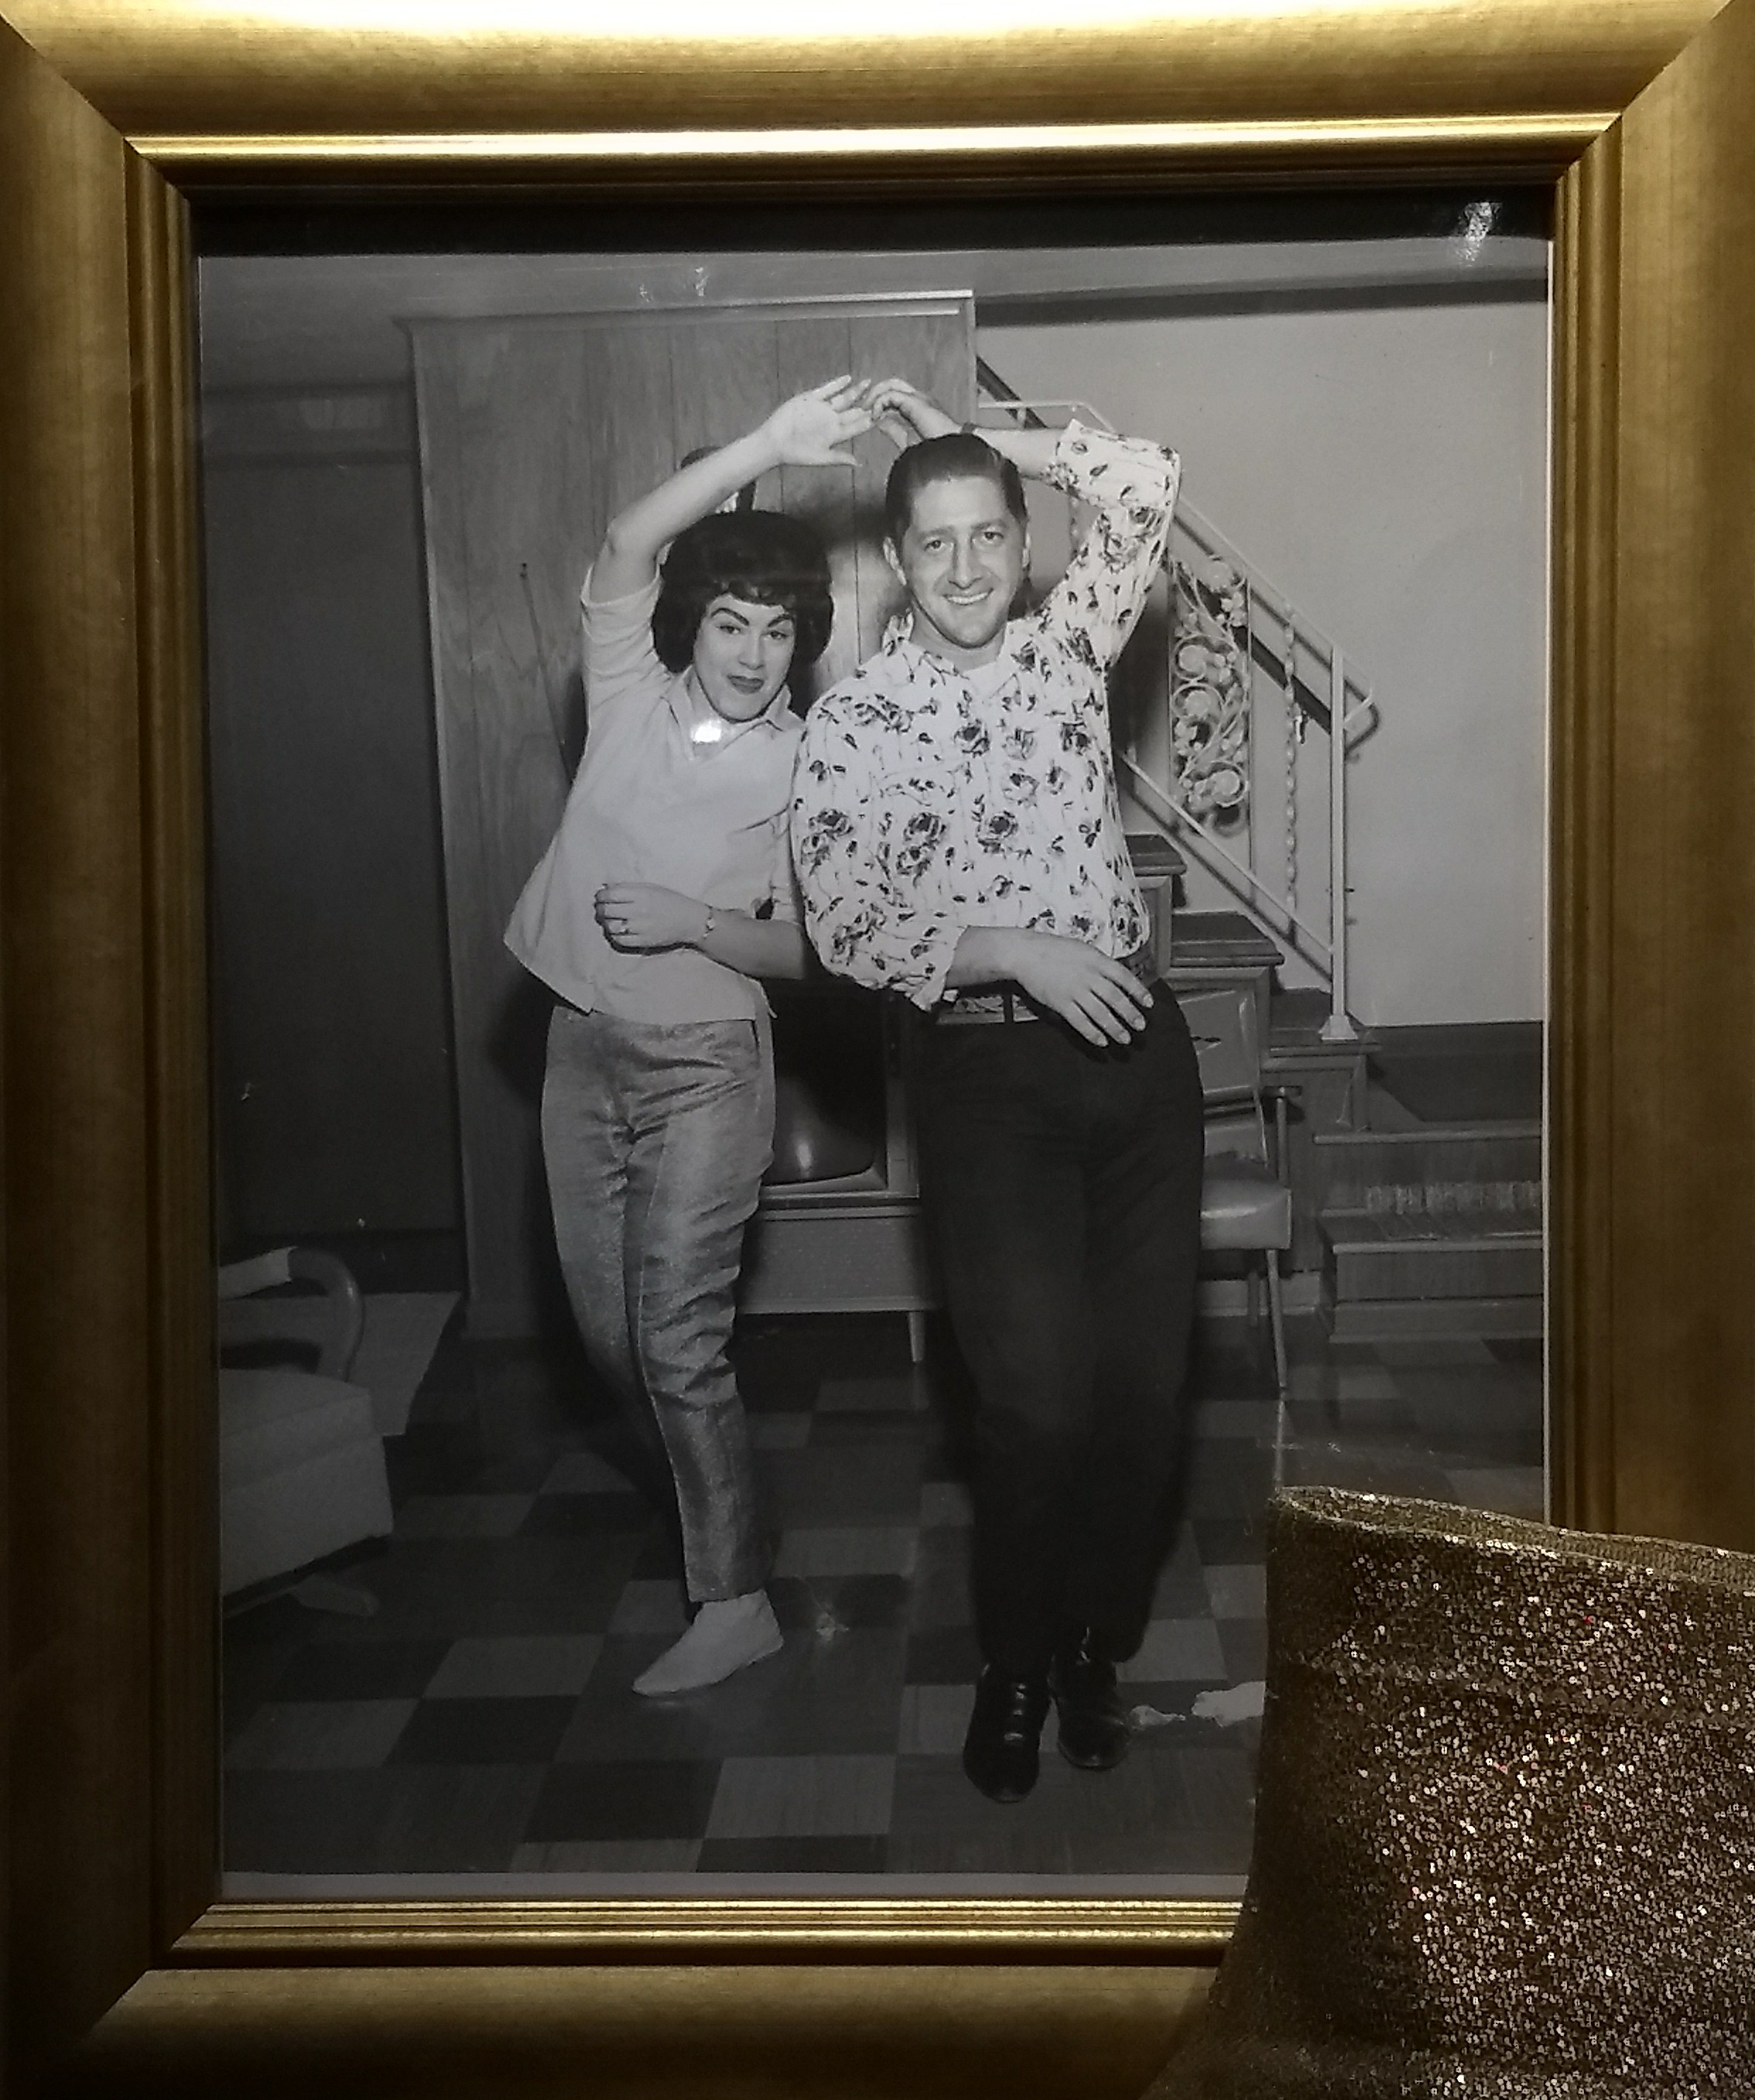 Patsy Cline with second husband Charles Allen Dick